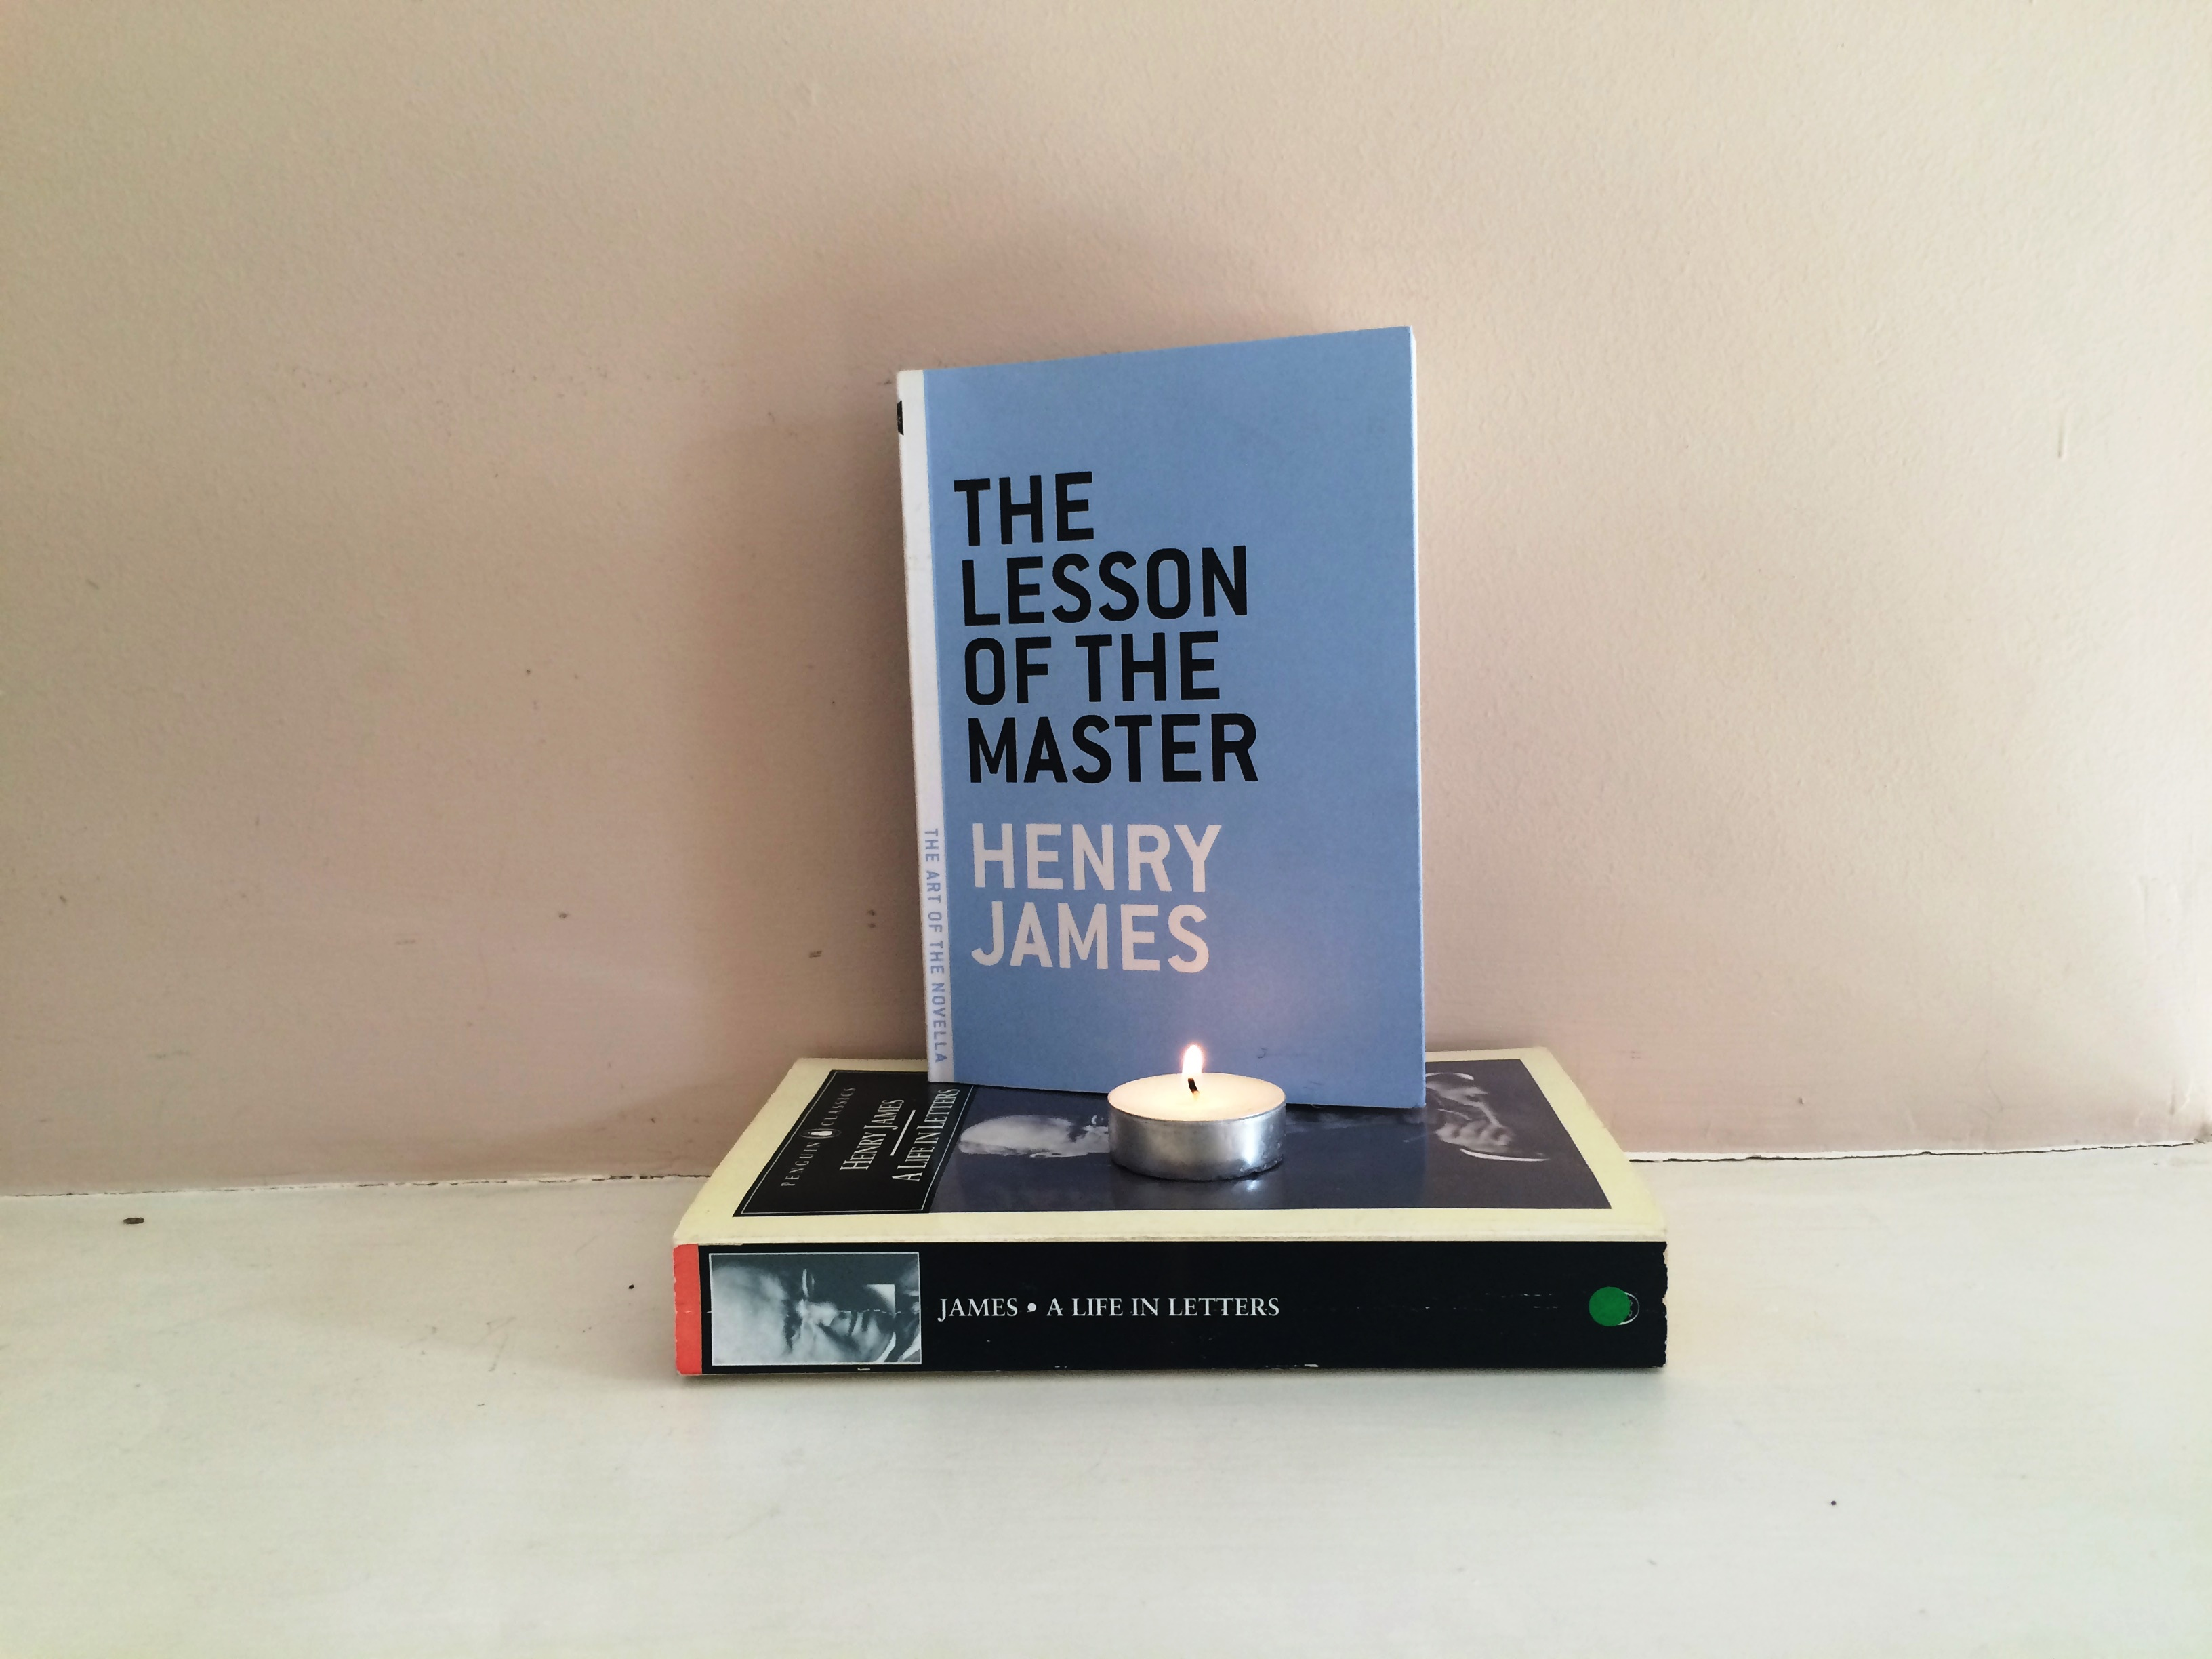 The Art of the Novella challenge 16: The Lesson of the Master